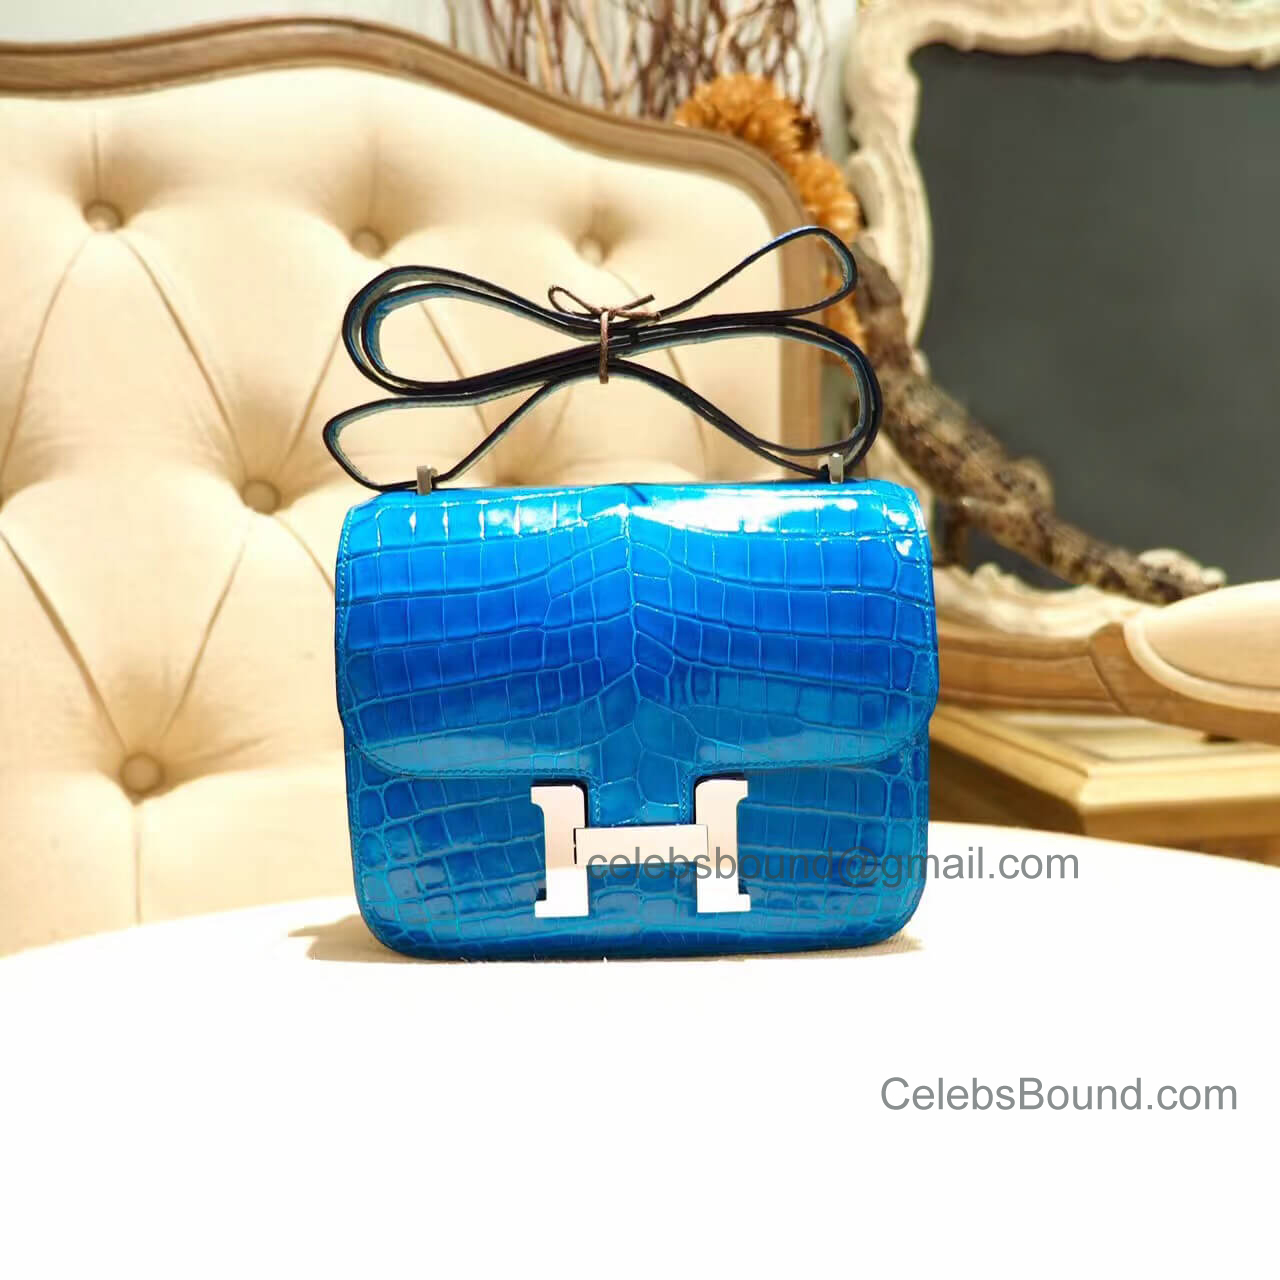 Replica Hermes Mini Constance 18 Bag in 7w Blue Izmir Shiny Nile Croc PHW